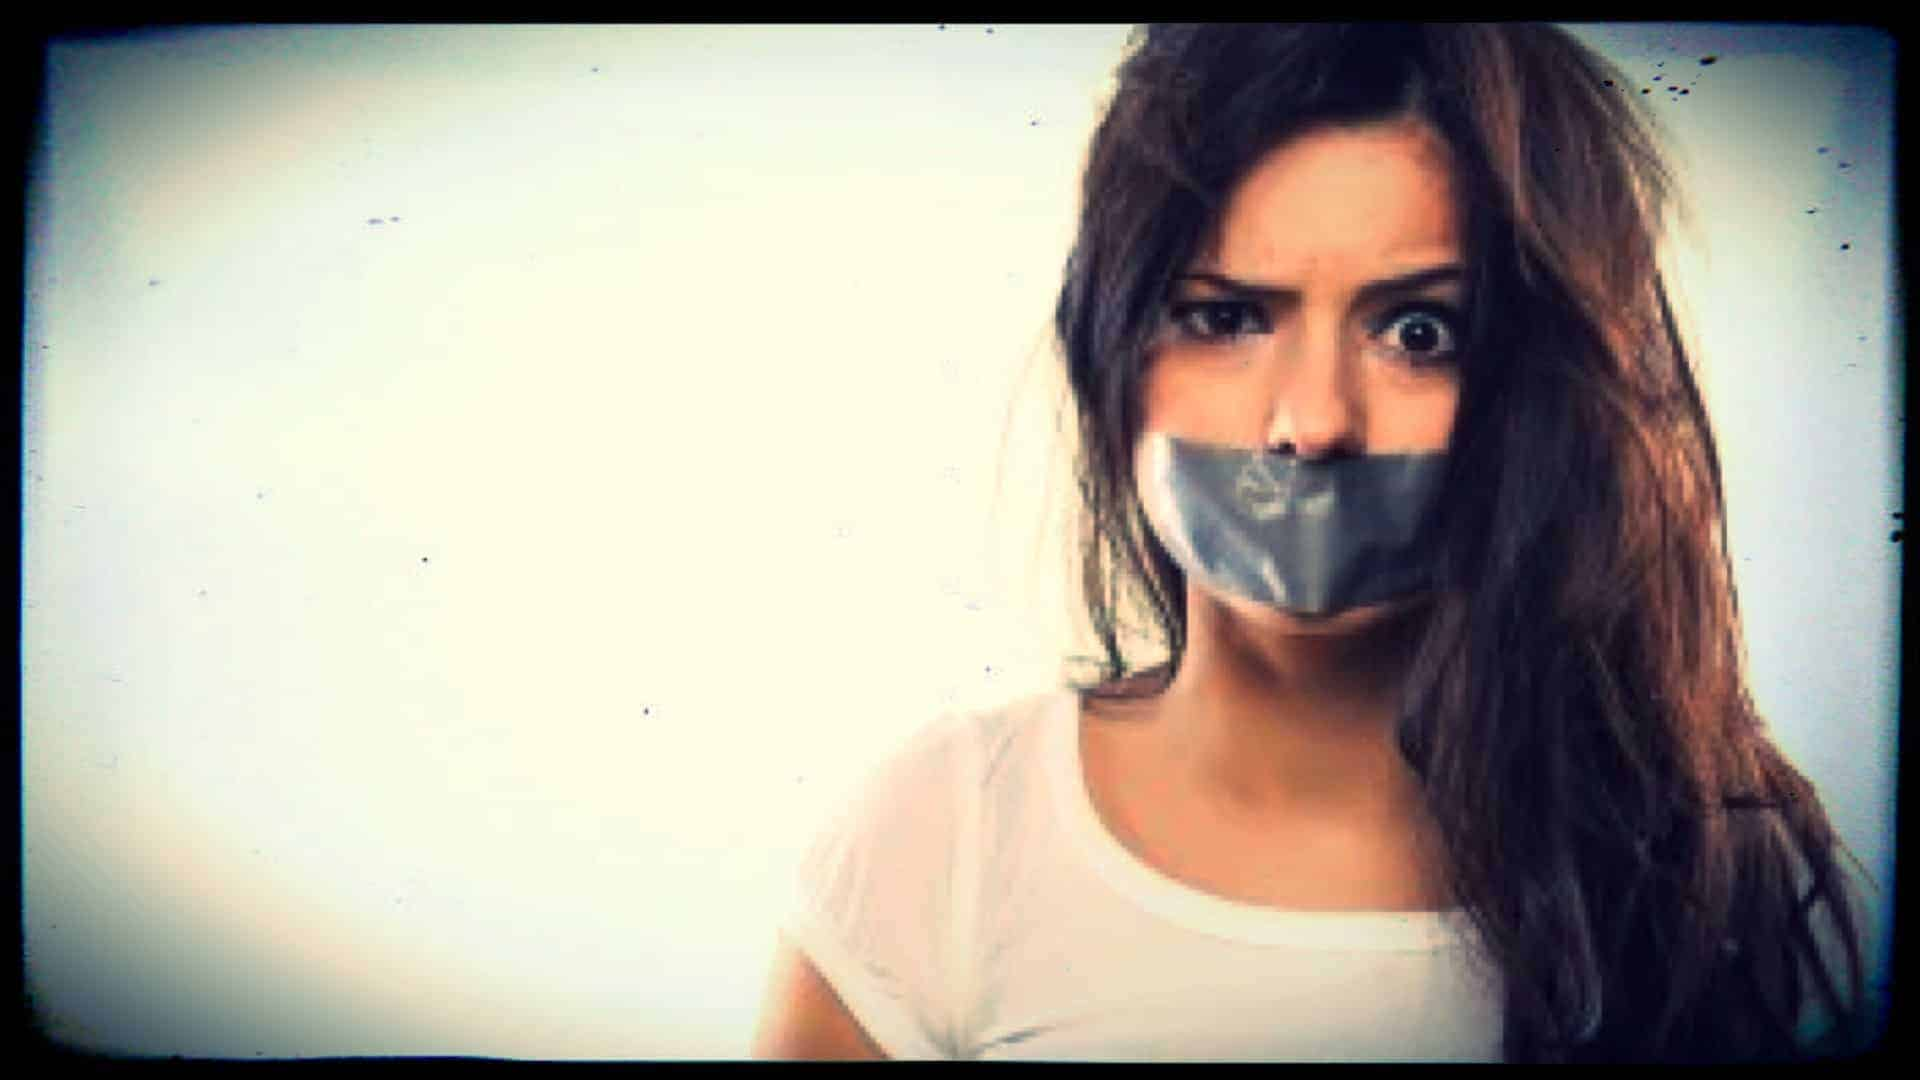 A person is shown from the shoulders up. They have grey tape across their mouth, silencing them. One eyebrow lifted in astonishment.